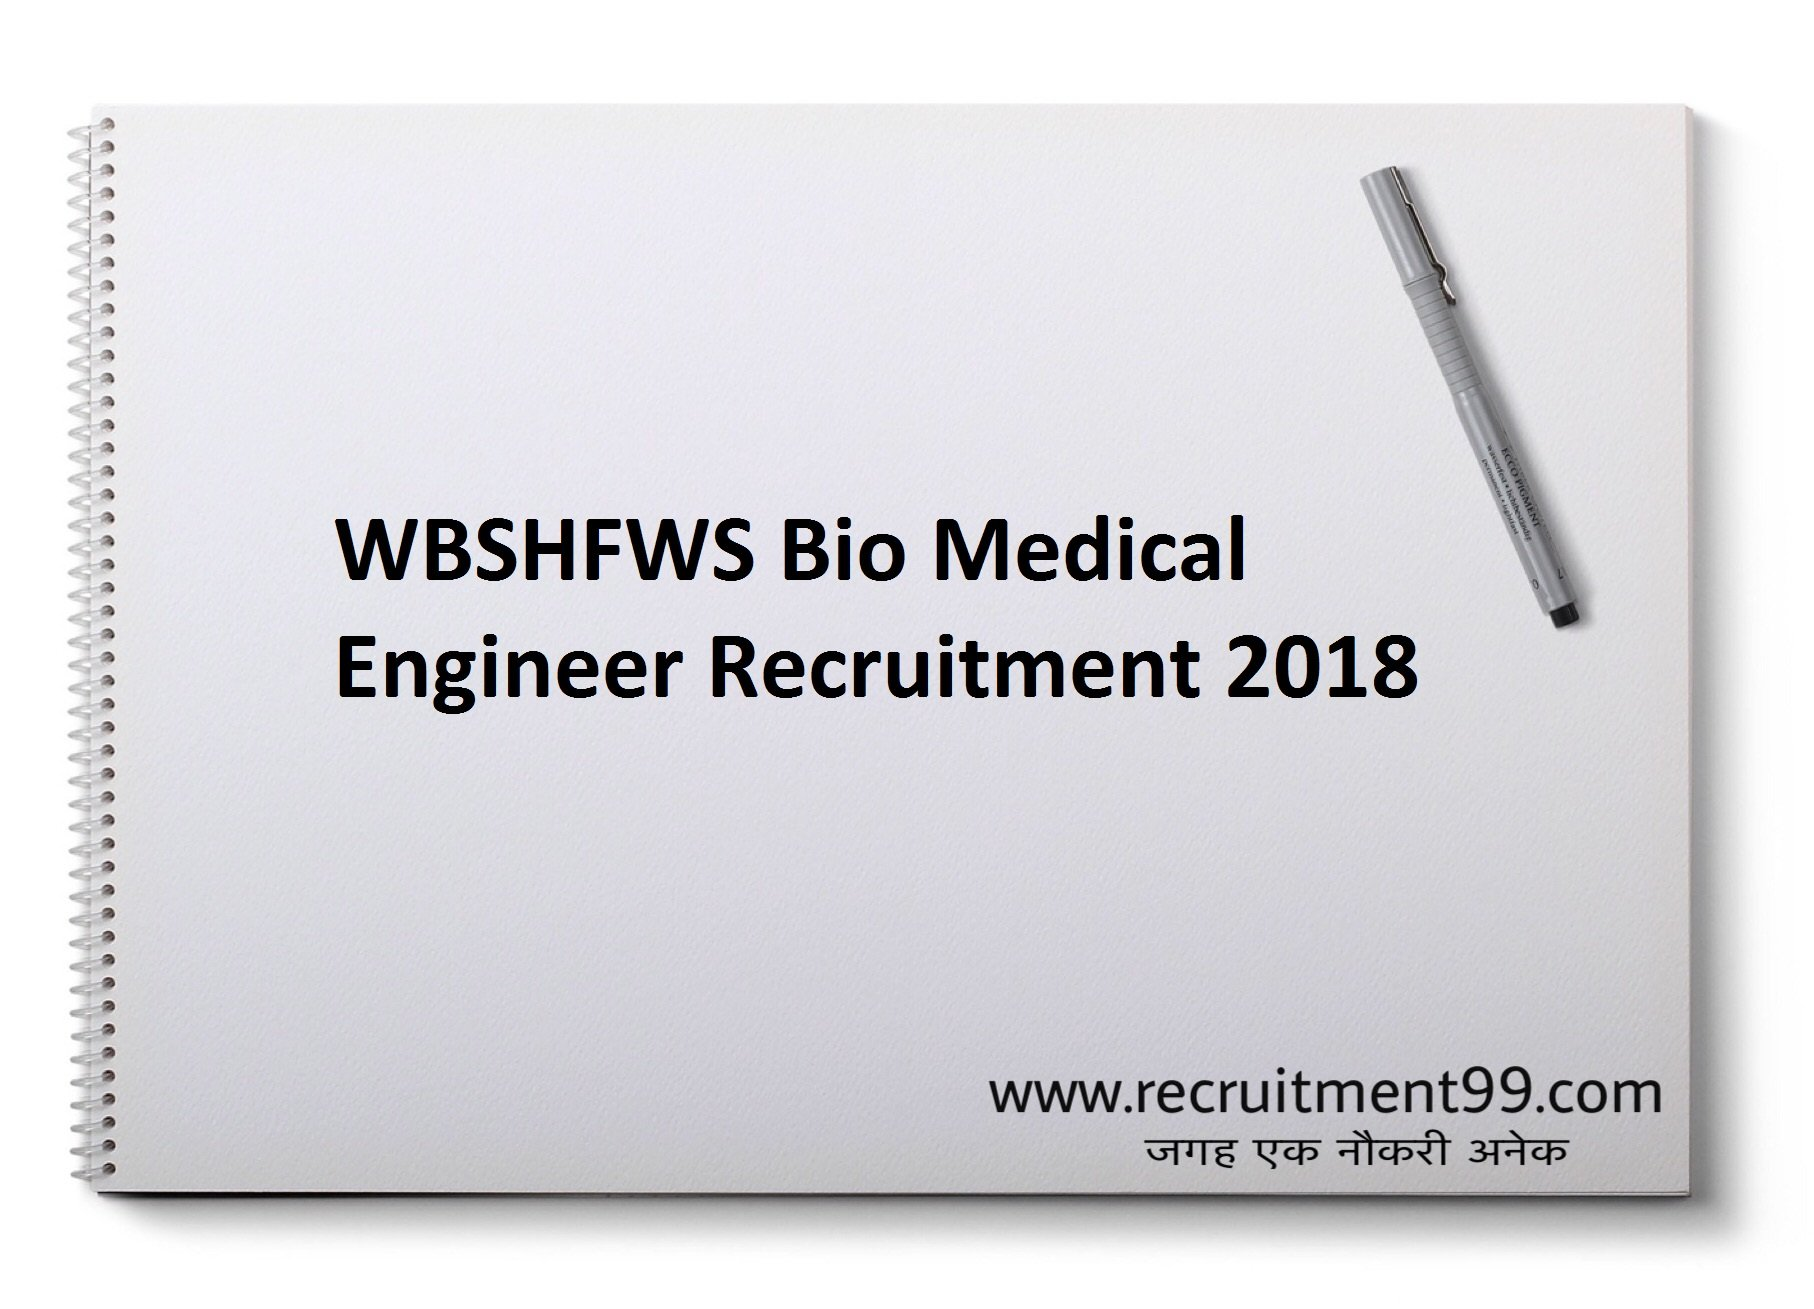 WBSHFWS Bio Medical Engineer Recruitment Admit Card Result 2018